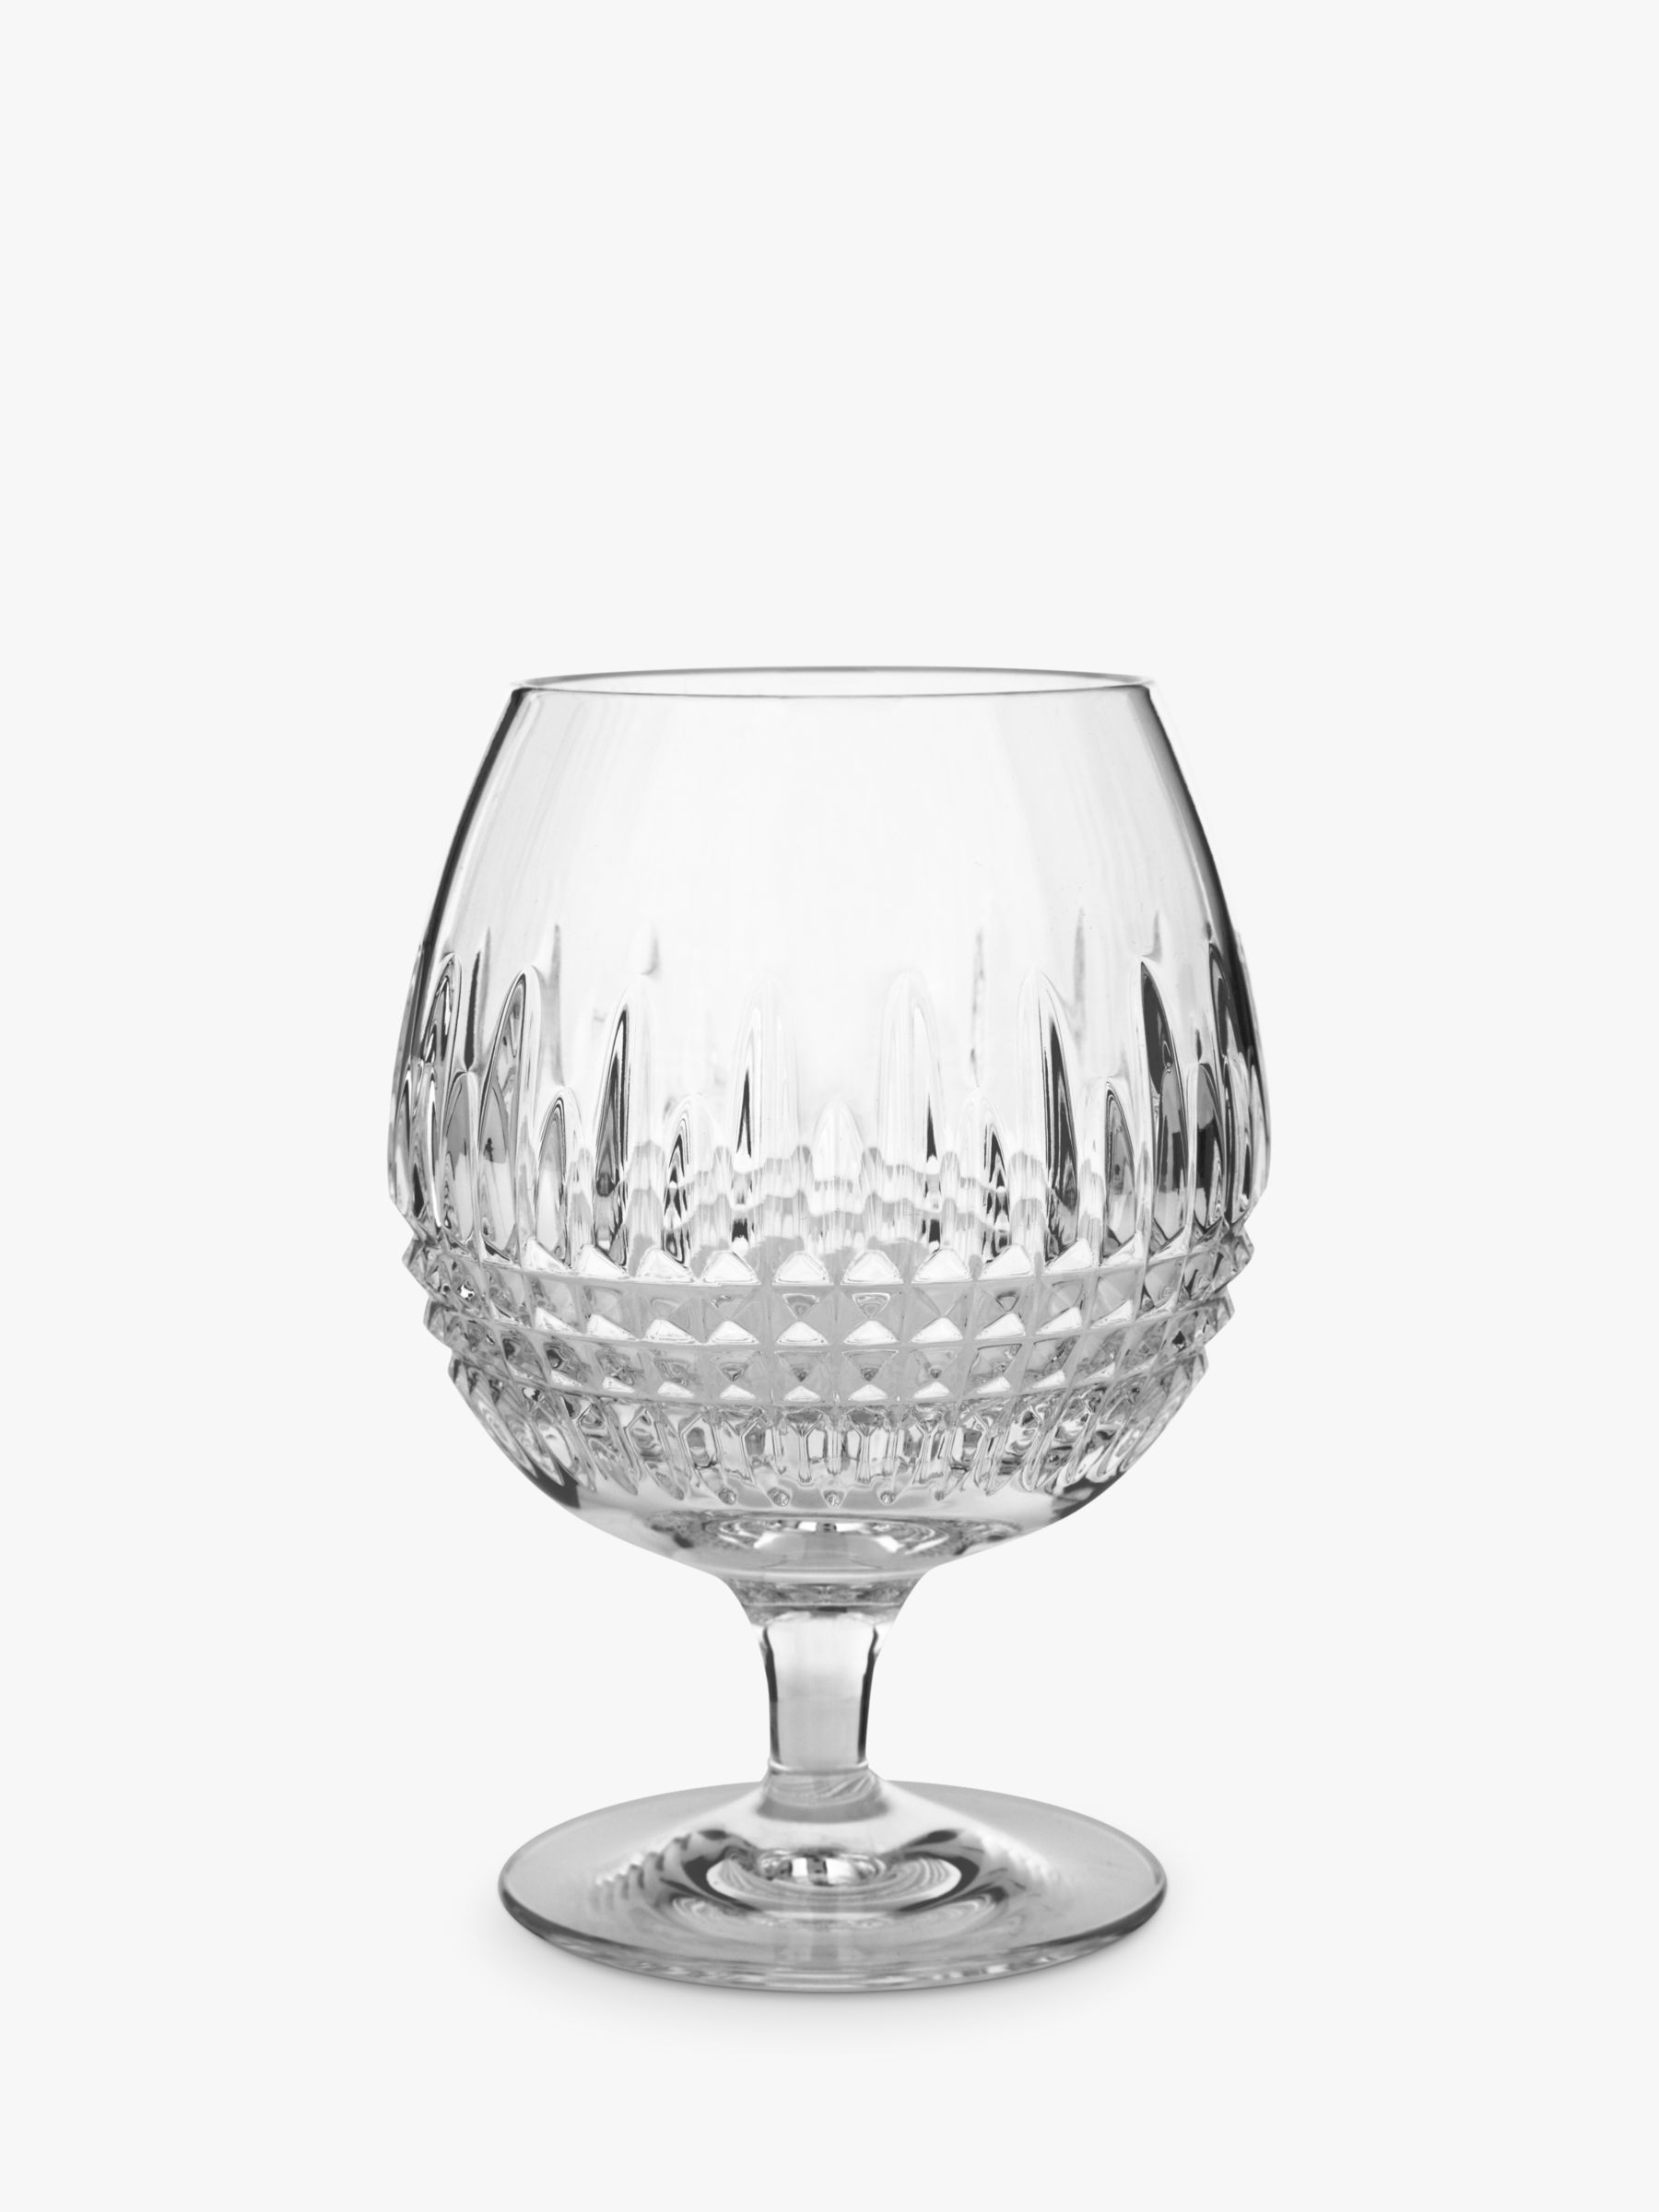 Waterford Waterford Lismore Diamond Brandy Glasses, Set of 2, 500ml, Clear